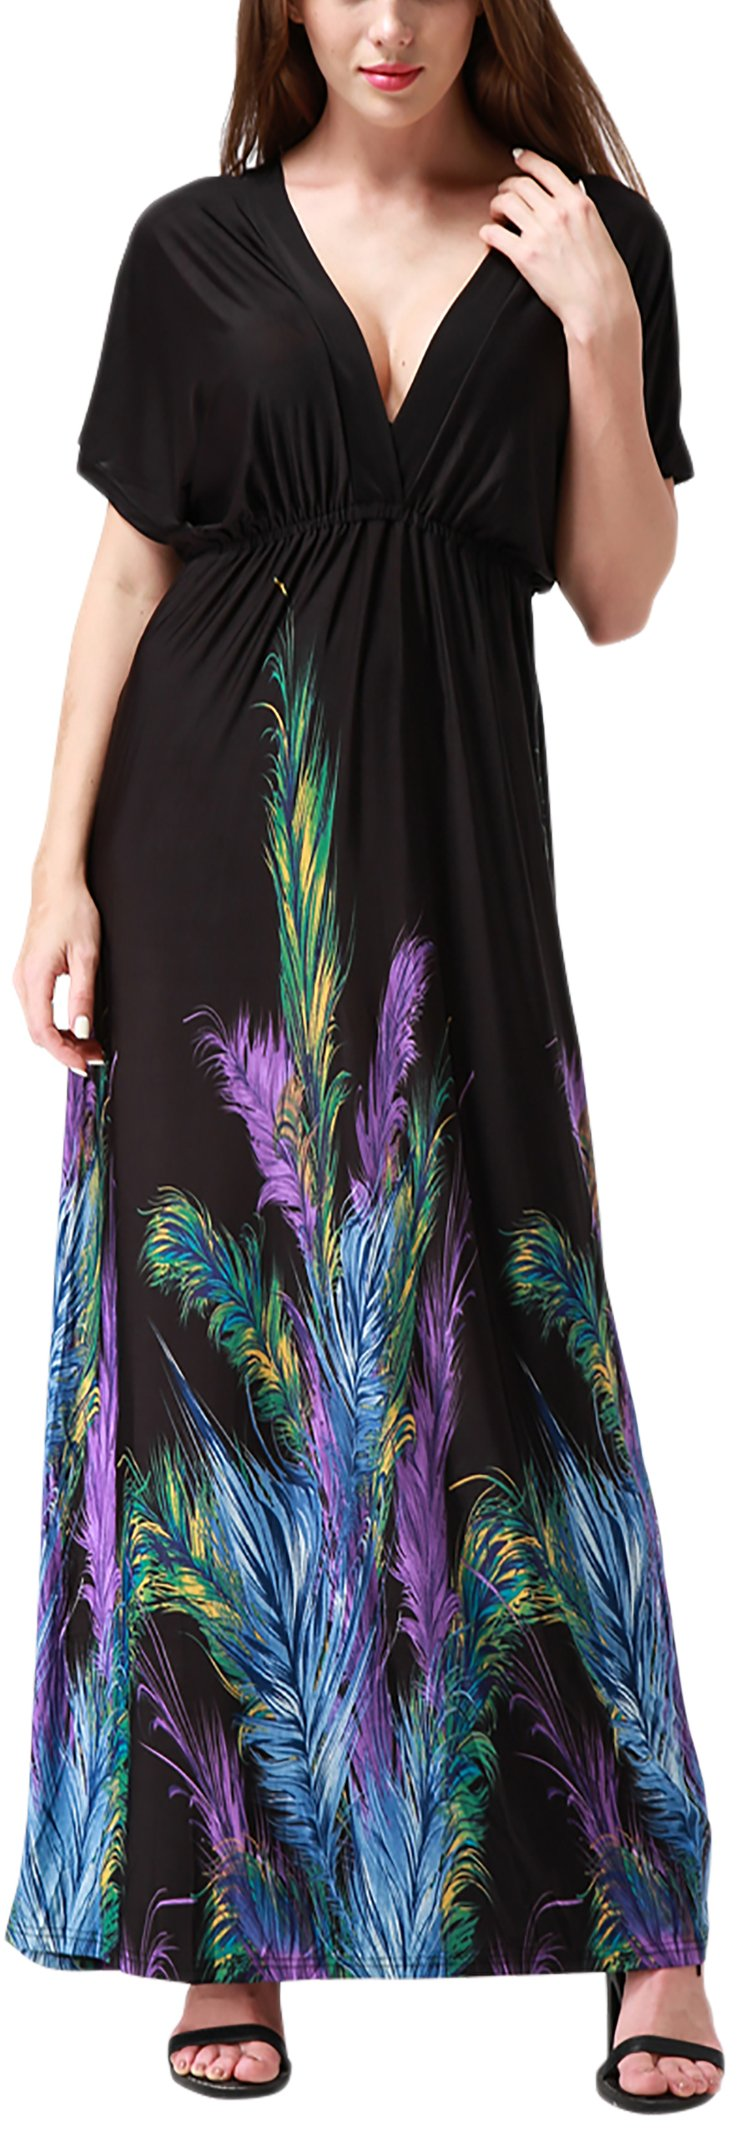 Wantdo Women's Deep V-Neck Maxi Dress Boho Style Backless Casual Long Dresses with Short Sleeves Black Feather L